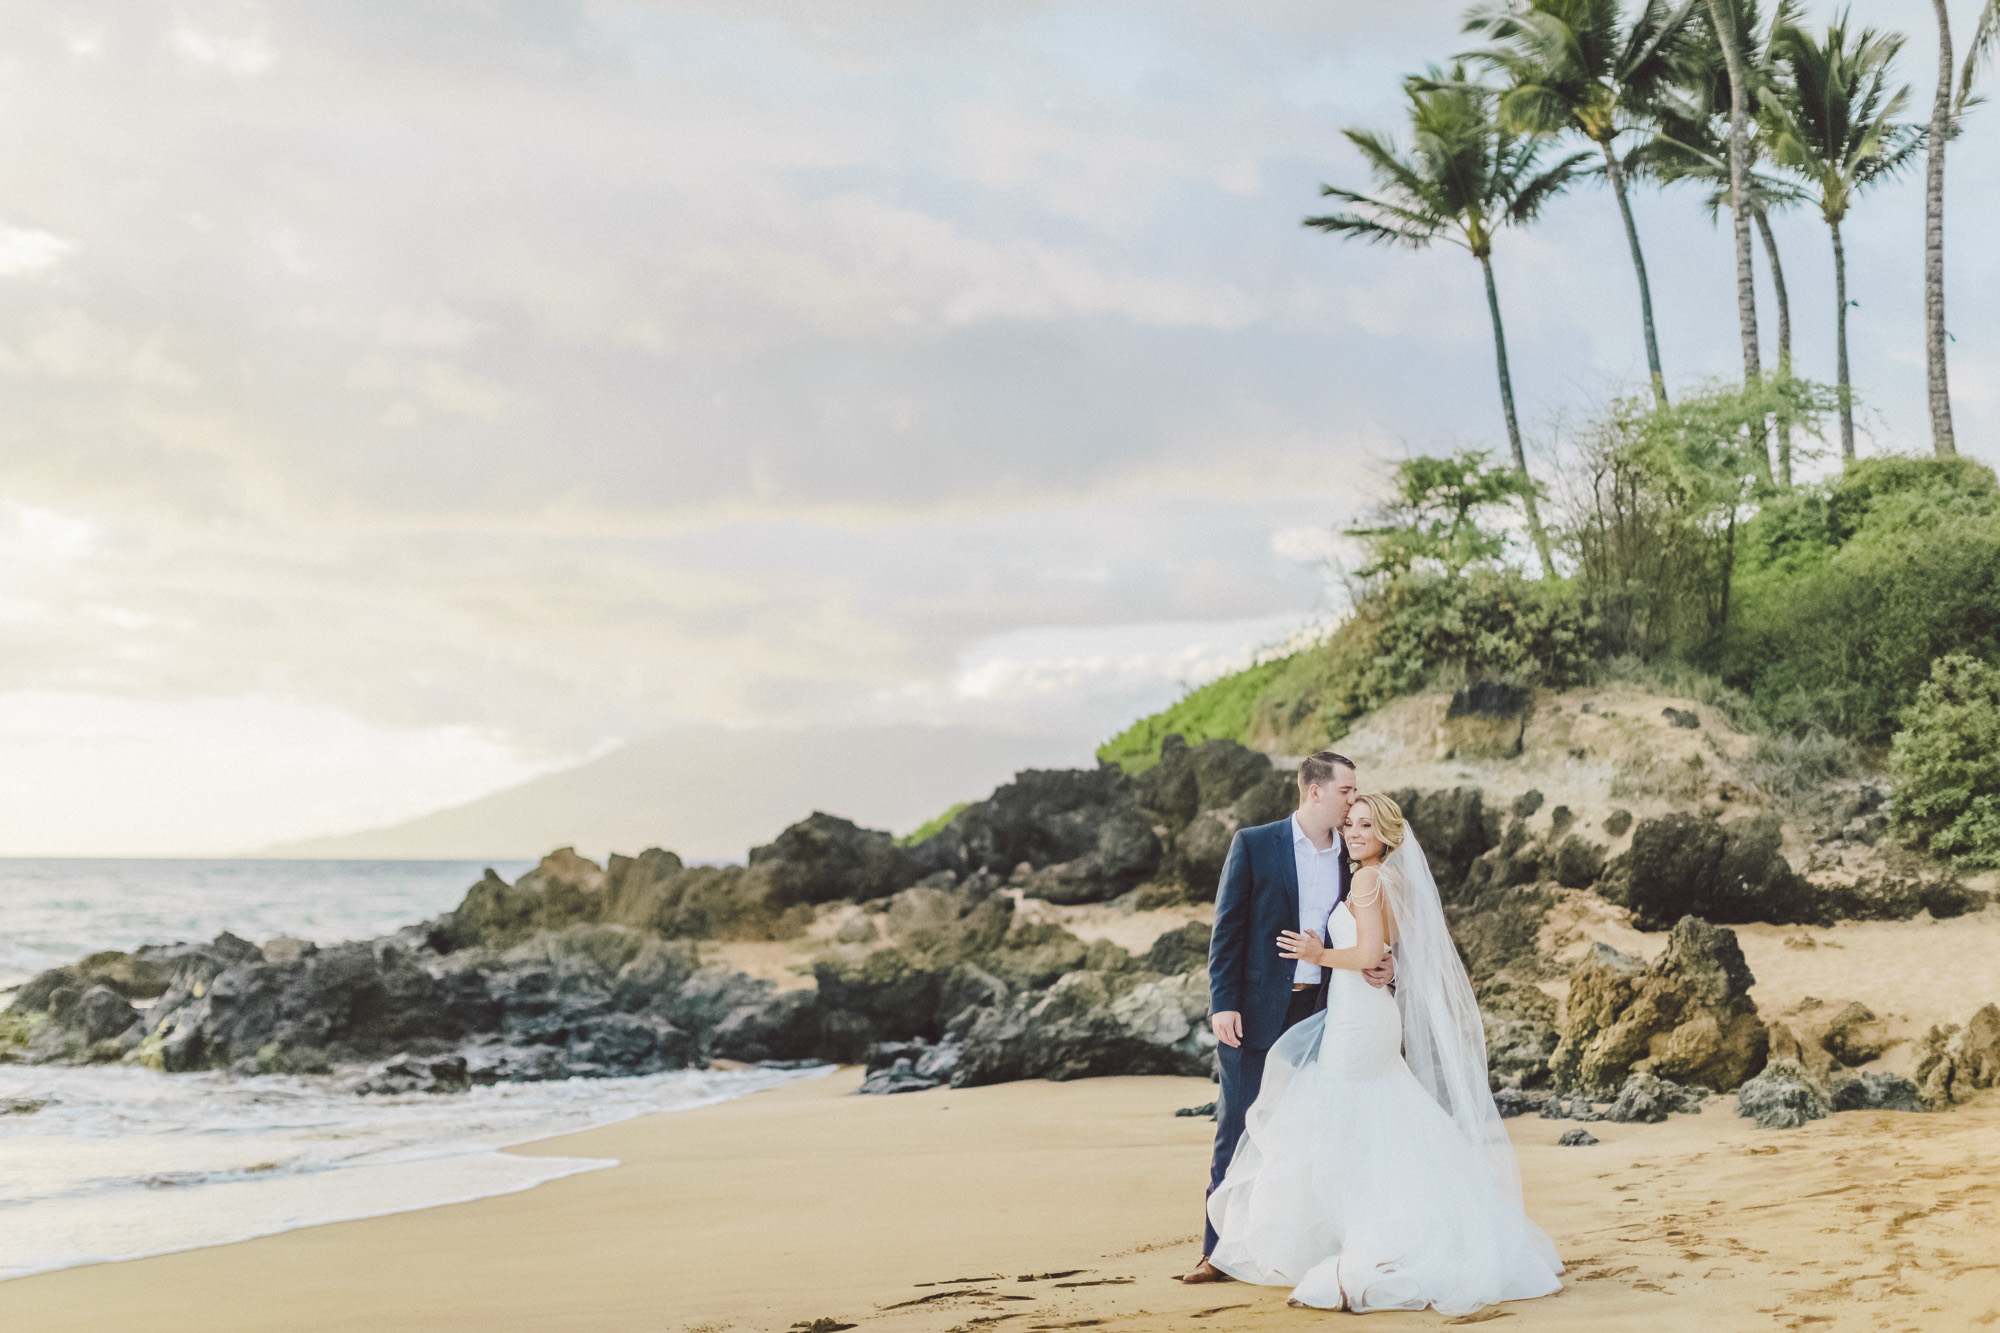 Maui hawaii photographer wedding inspiration_27.jpg